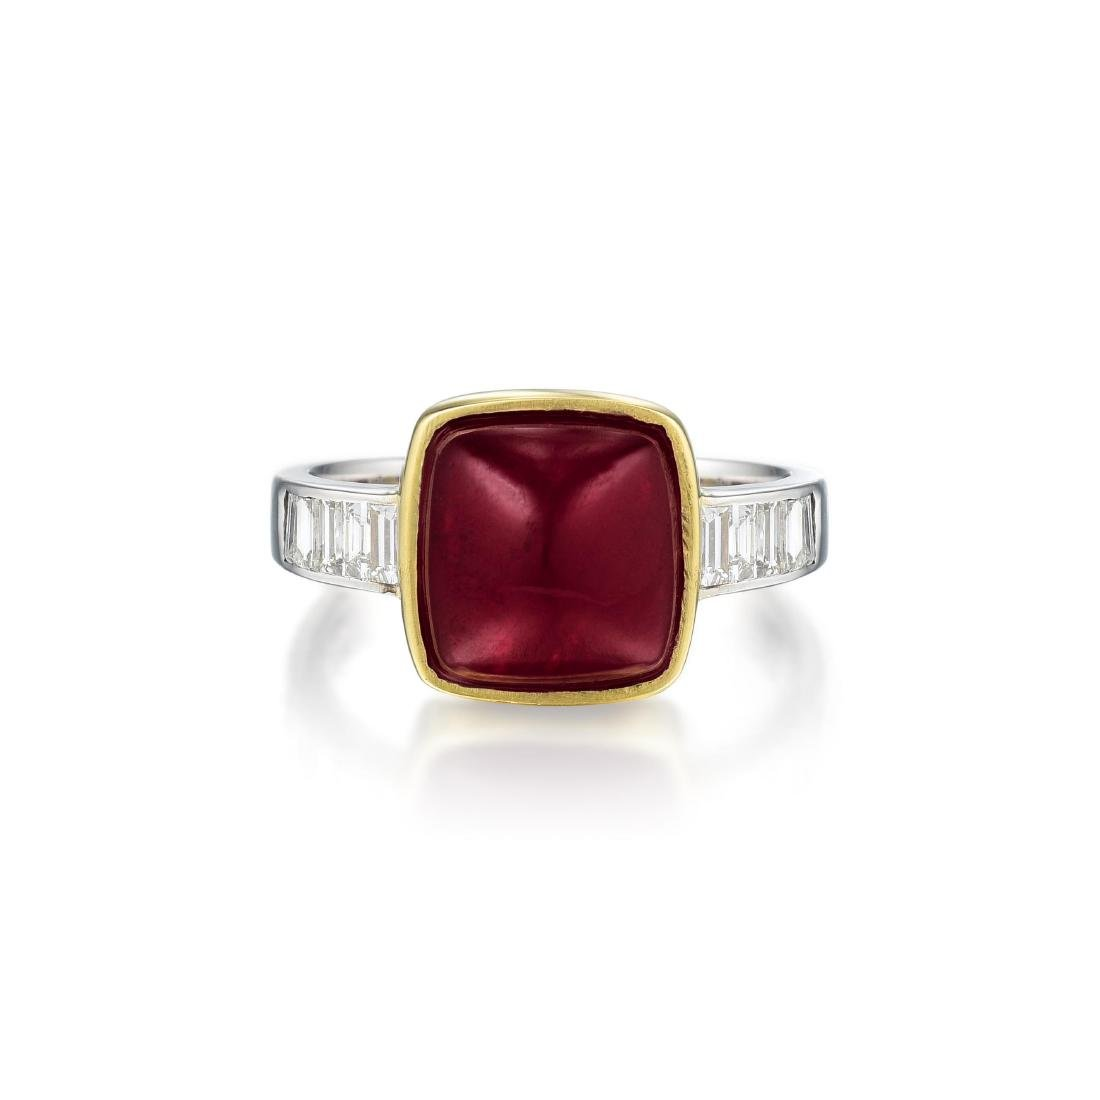 An 18K White and Yellow Gold Ruby and Diamond Ring